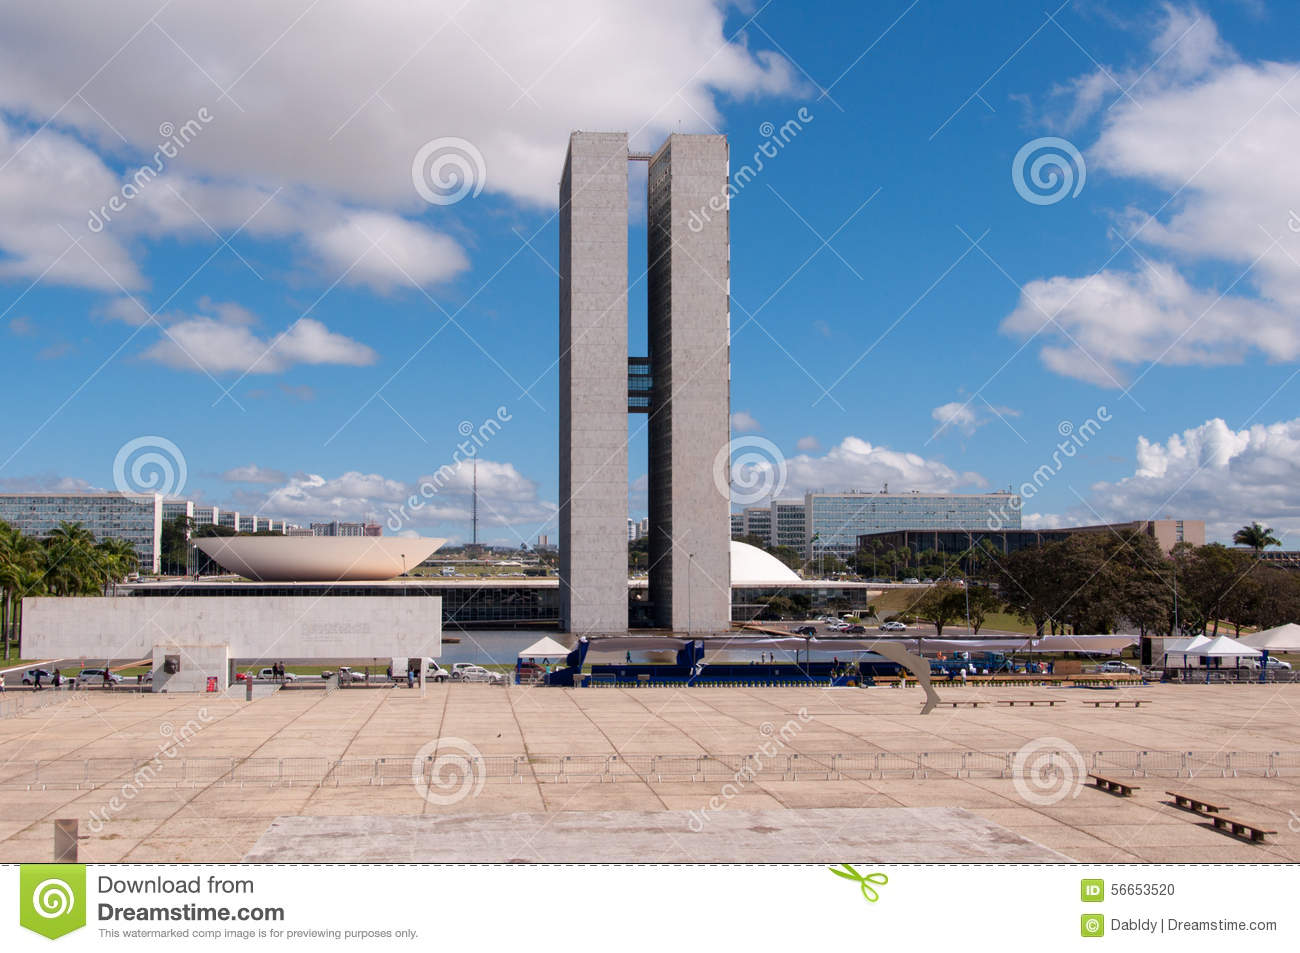 Modernism Postmodernism In Architecture in addition 570ba615e58ece64aa00017e Interview With Peter Eisenman I Am Not Convinced That I Have A Style Photo in addition More Honda moreover Editorial Image Brazilian National Congress Brasilia Brazil June Building Was Designed Oscar Niemeyer Modern Style Image56653520 besides Here Are Architect Oscar Niemeyers Most Beautiful Buildings. on oscar niemeyer architecture style